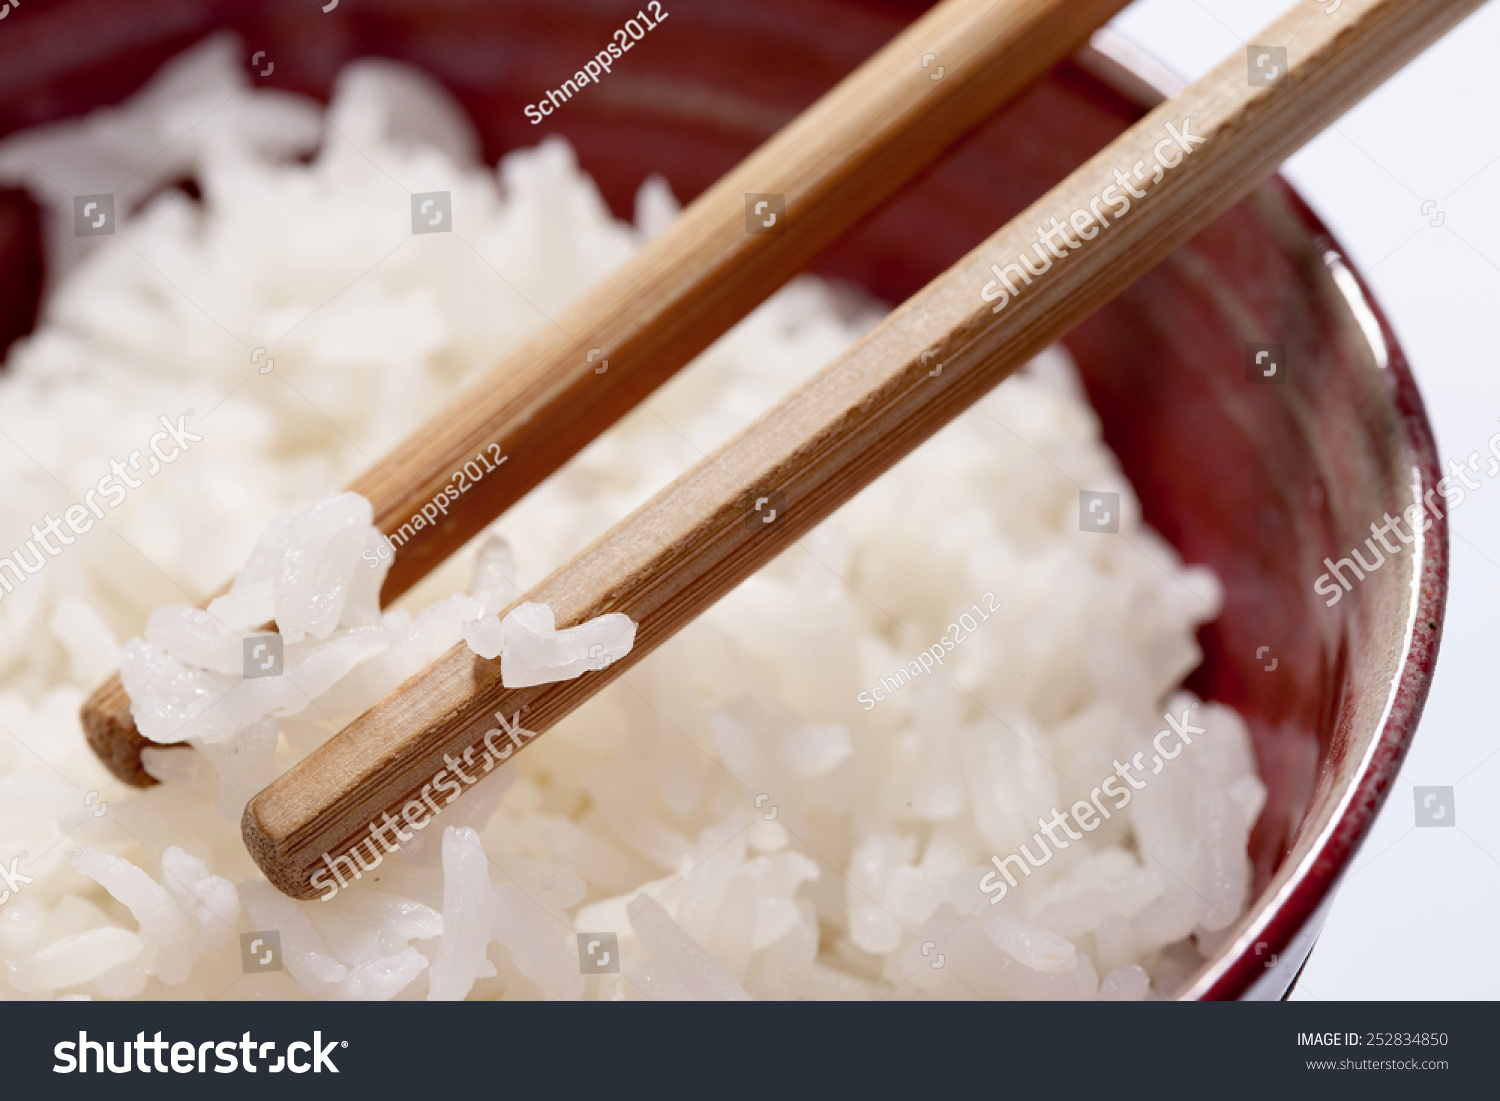 Bowl Of Rice With Chopsticks On White Background Stock ...